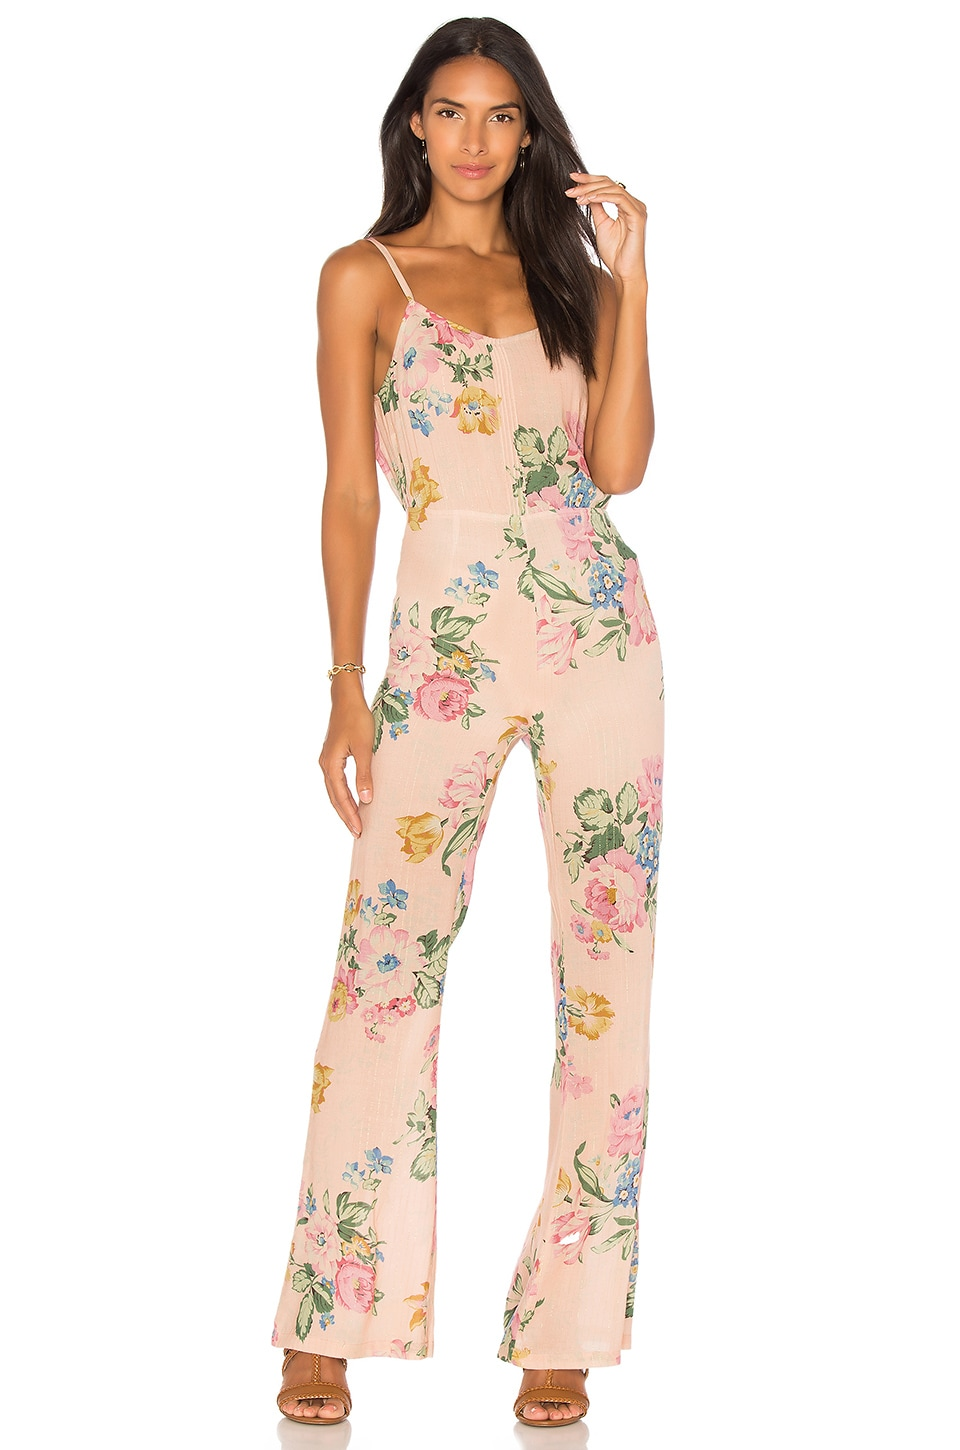 x REVOLVE Havana Nights Backless Splash Flared Jumpsuit by AUGUSTE